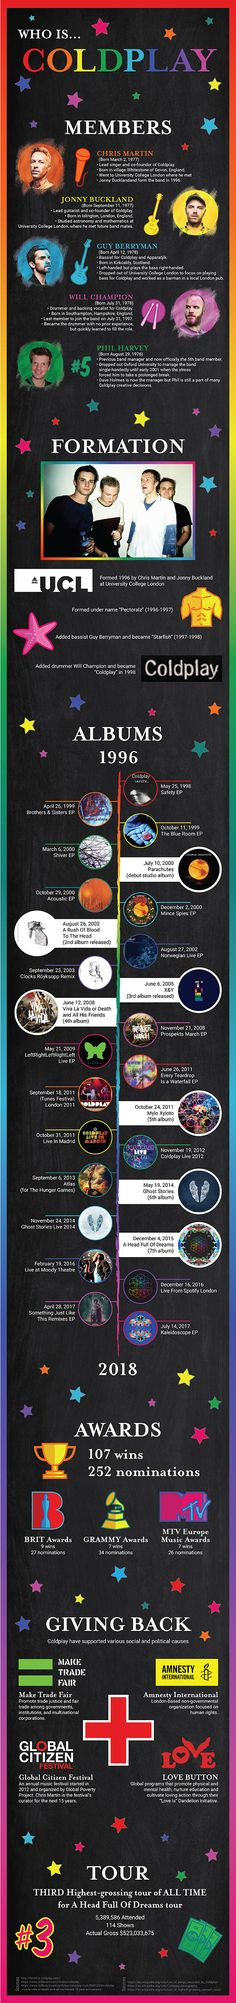 231 Best Coldplay Fandom images in 2018 | Cool bands, Chris